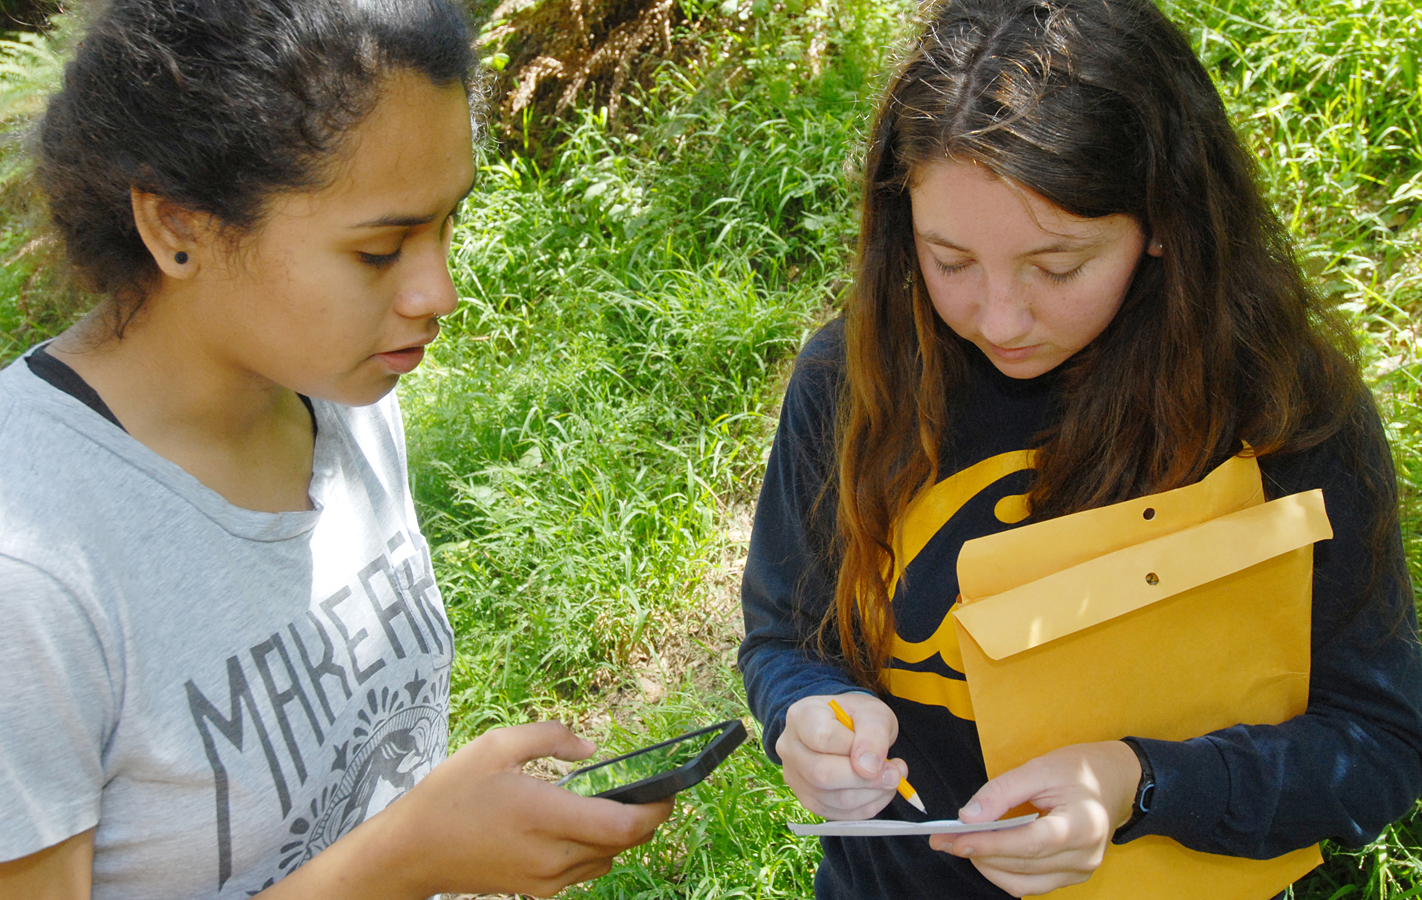 Two women collect data using a mobile app